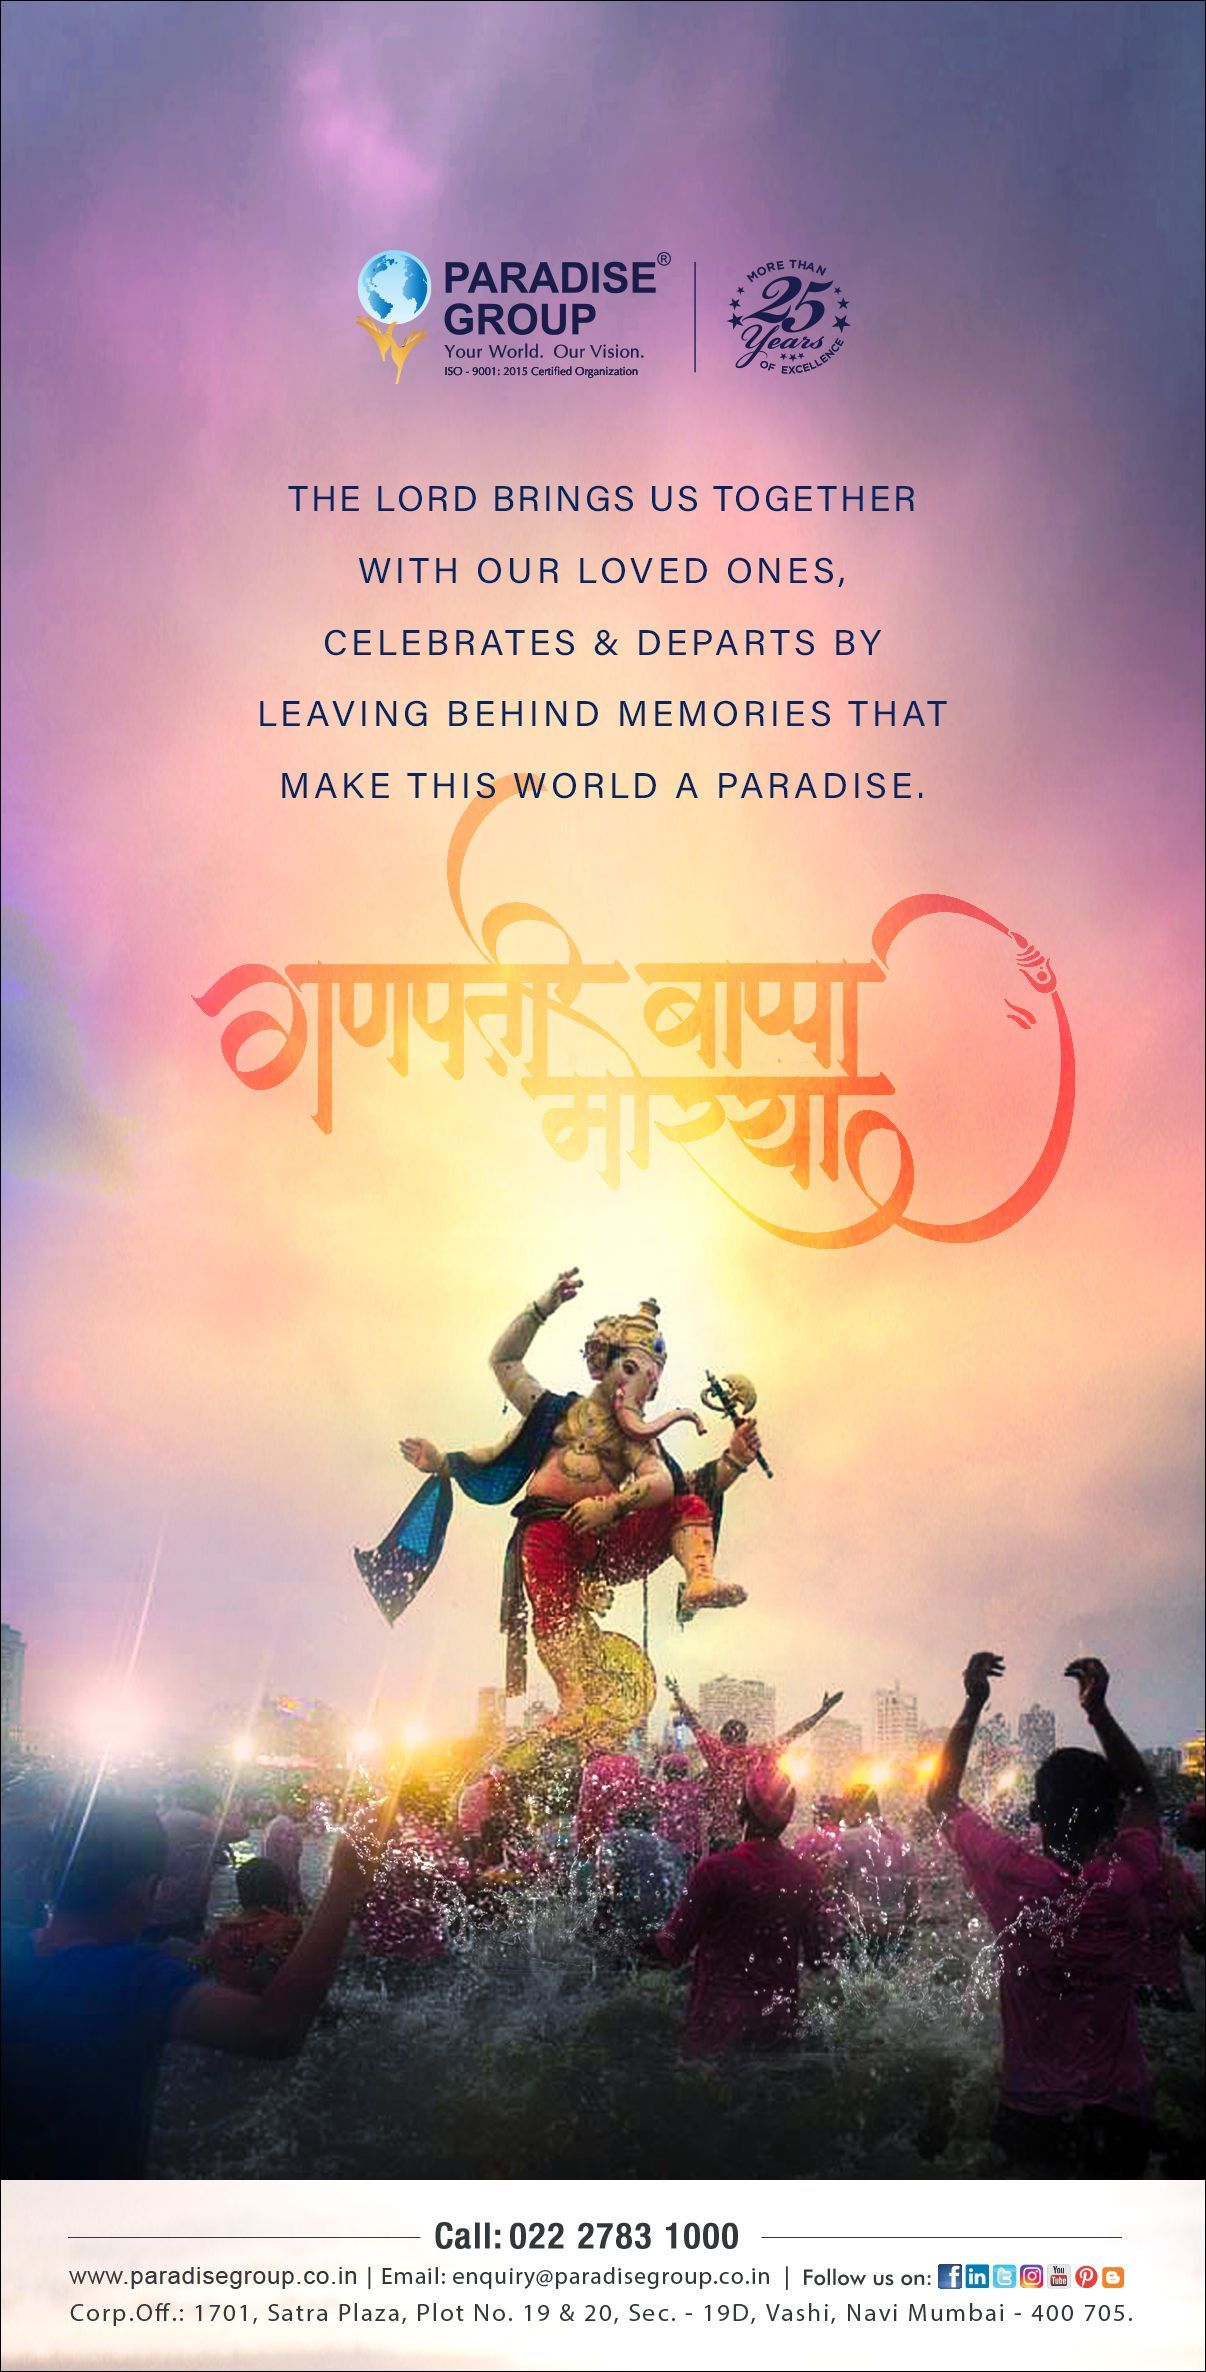 Best wishes of this auspicious day of Anant Chaturdashi